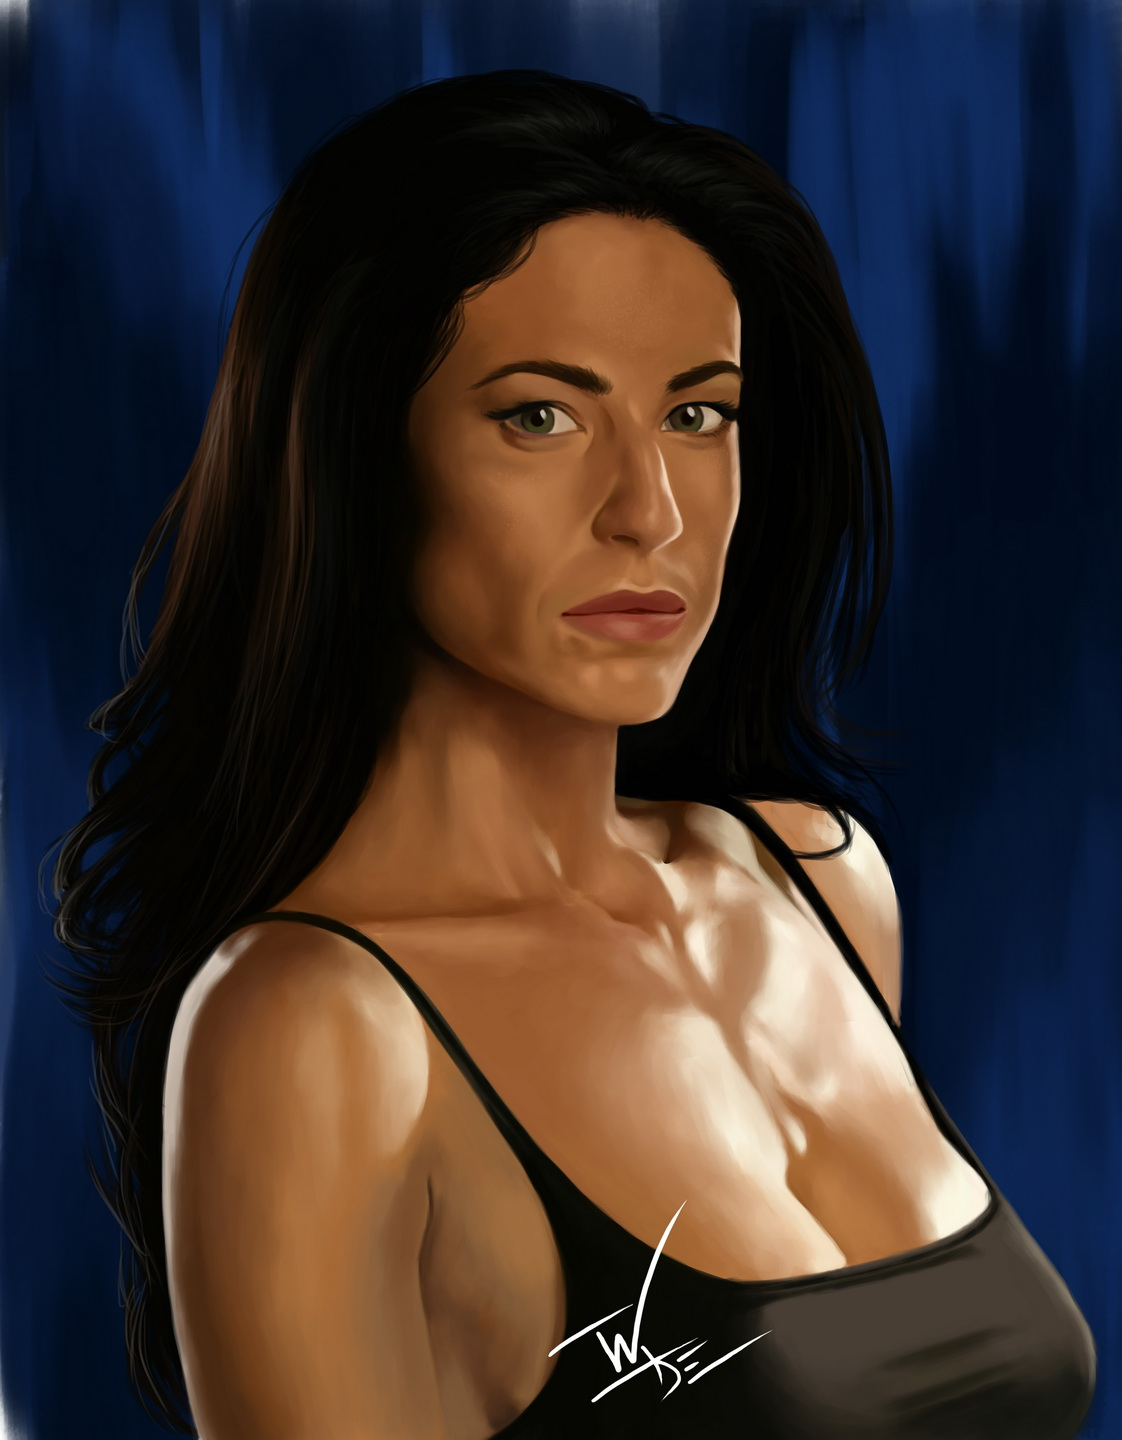 claudia black dragon ageclaudia black mass effect, claudia black voice, claudia black imdb, claudia black sons, claudia black quotes, claudia black facebook, claudia black pitch black, claudia black dragon age, claudia black now, claudia black bio, claudia black filmography, claudia black wallpaper, claudia black instagram, claudia black stargate, claudia black gif hunt, claudia black accent, claudia black twitter, claudia black actress